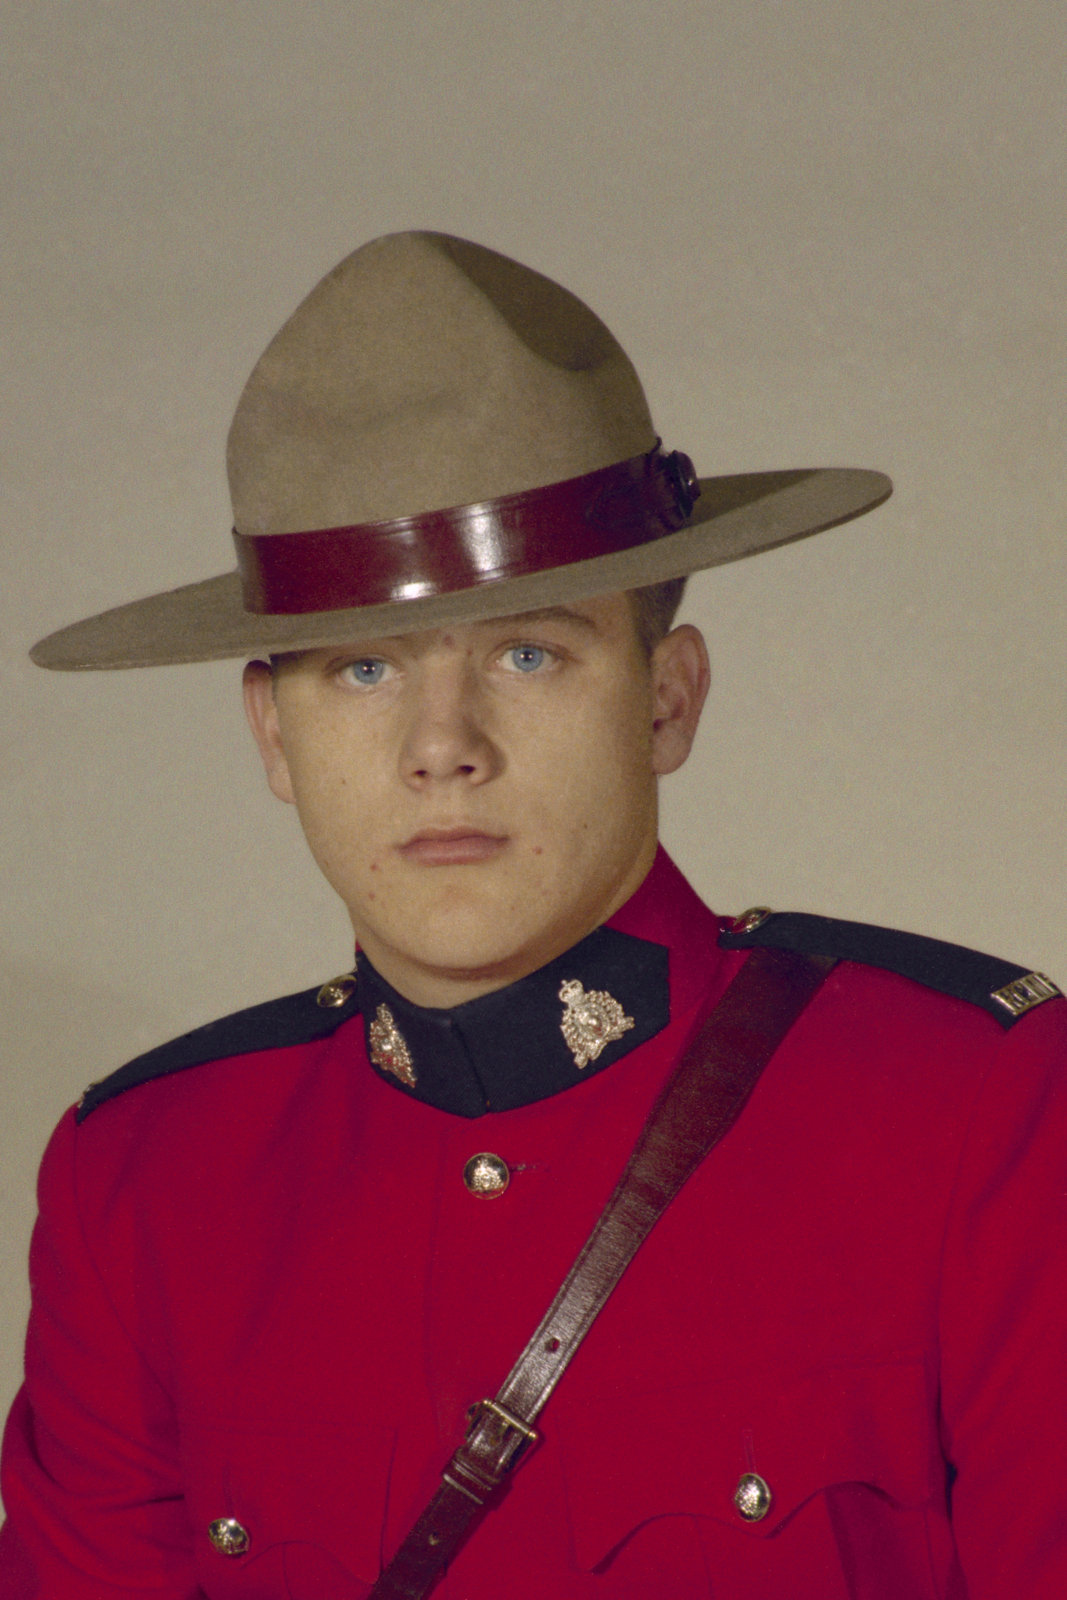 Constable Gerald Vernon Maurice Breese – © Her Majesty the Queen in Right of Canada as represented by the Royal Canadian Mounted Police